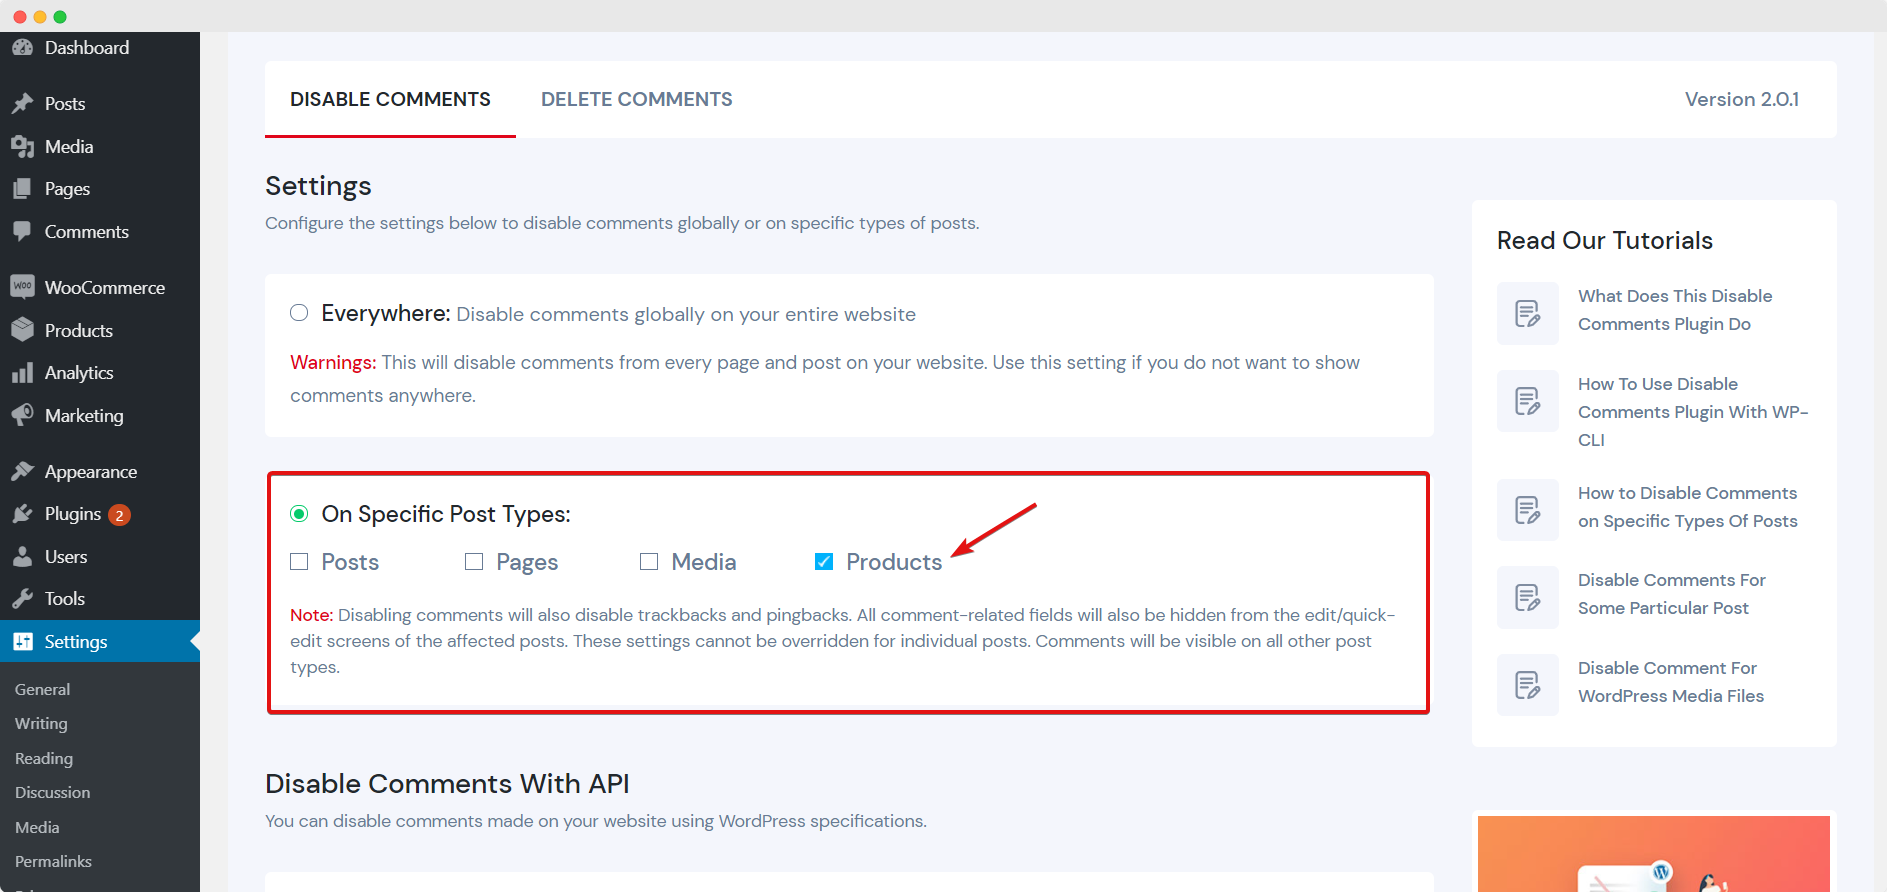 WPDeveloper Acquired Disable Comments WordPress Plugin With 1 Million+ Users 2